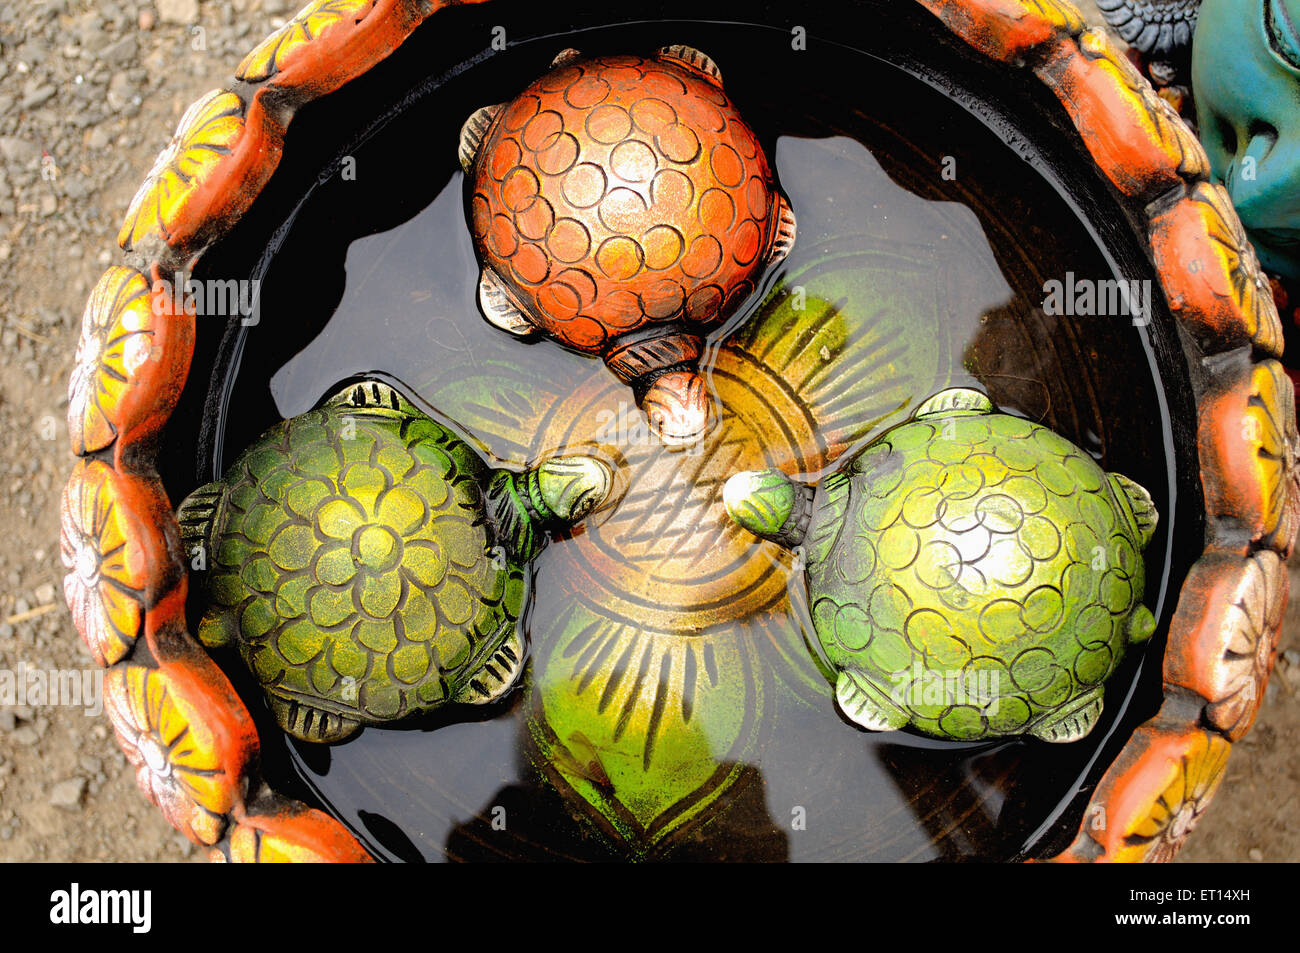 Tortoises in water pot ; India - Stock Image